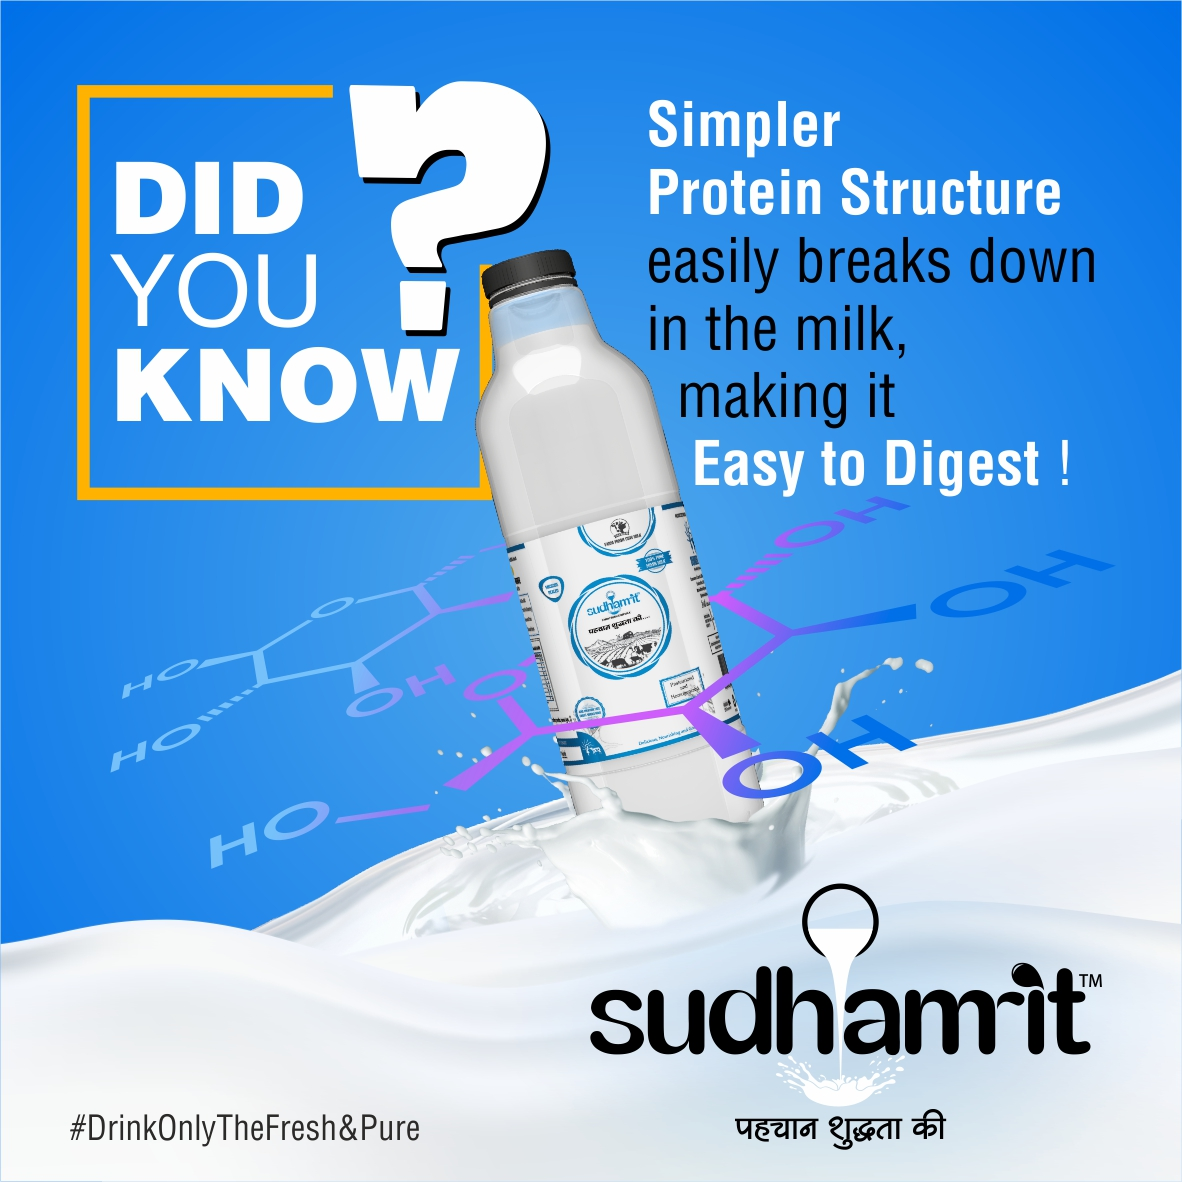 Replying to @DairySudhamrit: Why cow milk is so easy to digest. Did you know? #Sufoda #Milk #Dairy #ForHealthBenefit #DrinkOnlyTheFreshAndPure #sufoda #milk #food #cow #dairy #breakfast #yummy #farm #ghee #healthy #foodie #drink #sugar #coffeeshop #tea #delicious…